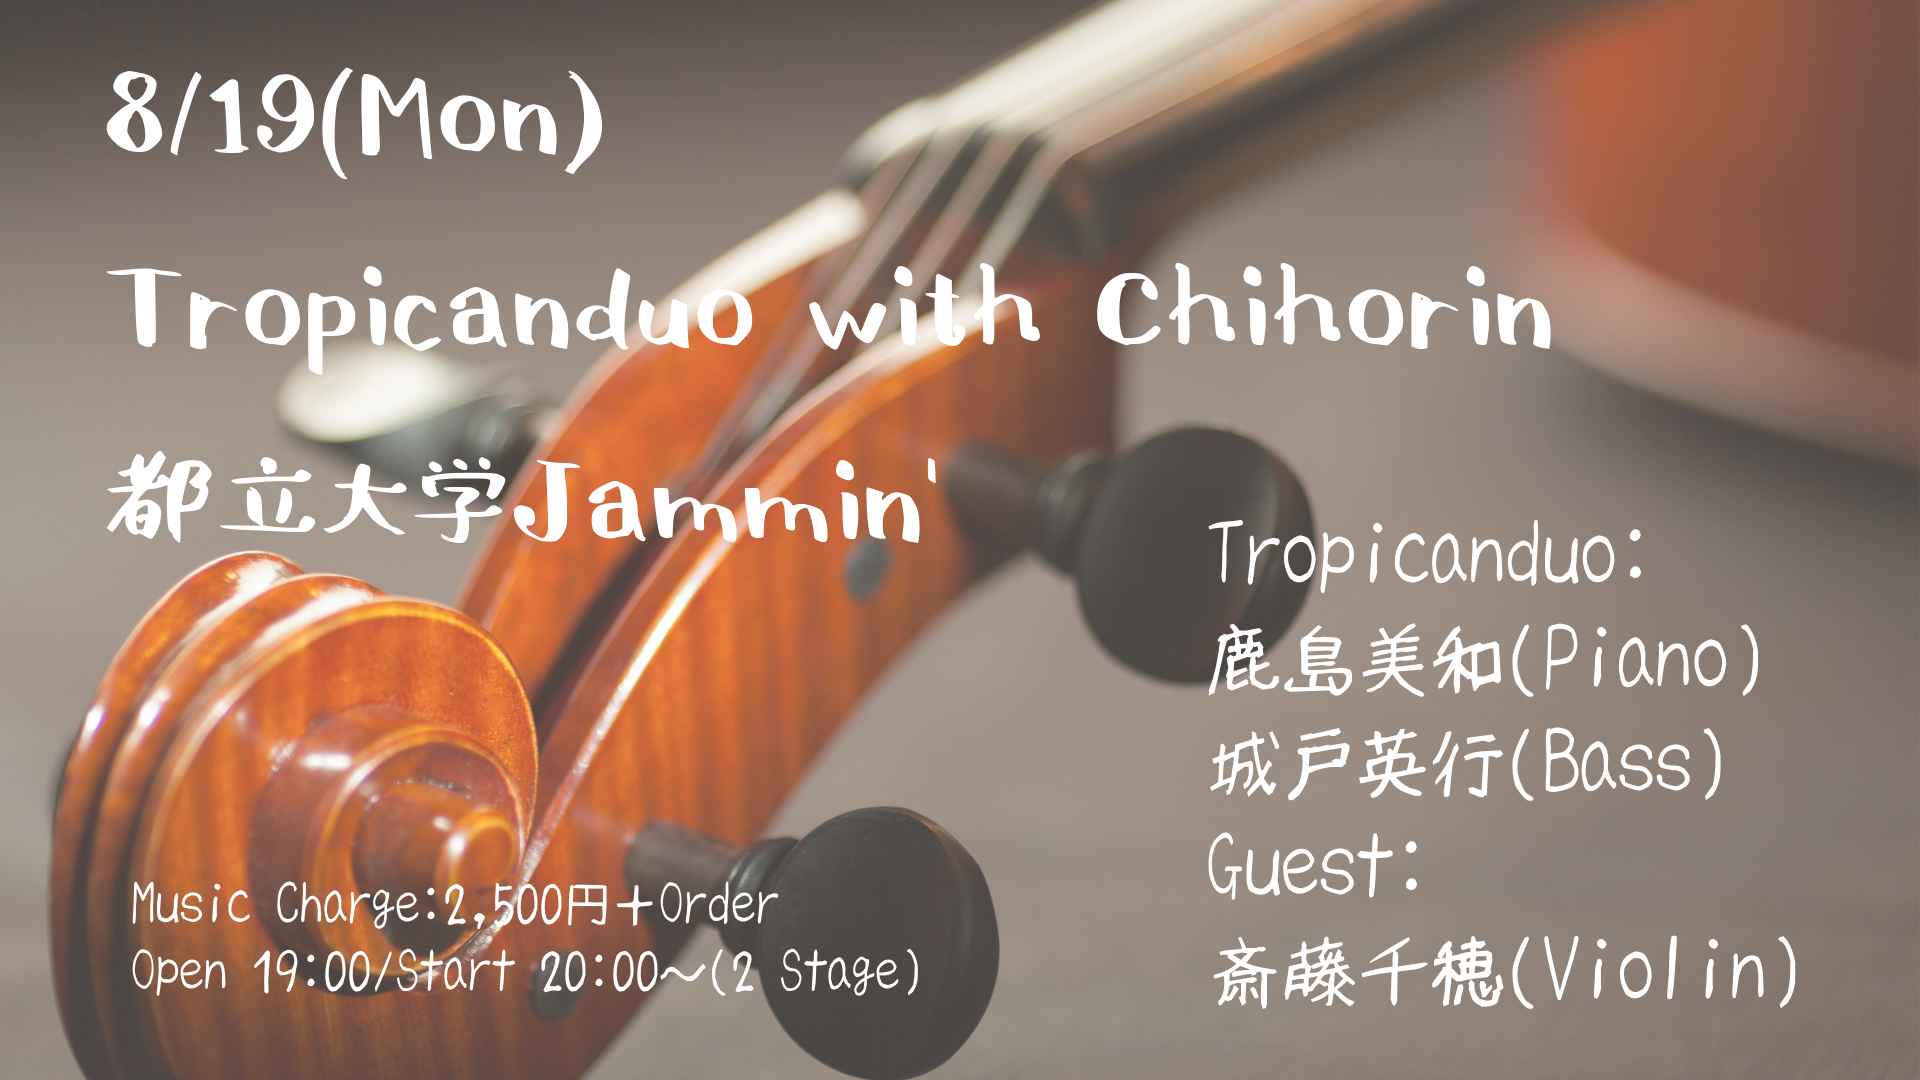 Tropicanduo with Chihorin @ 都立大学Jammin'